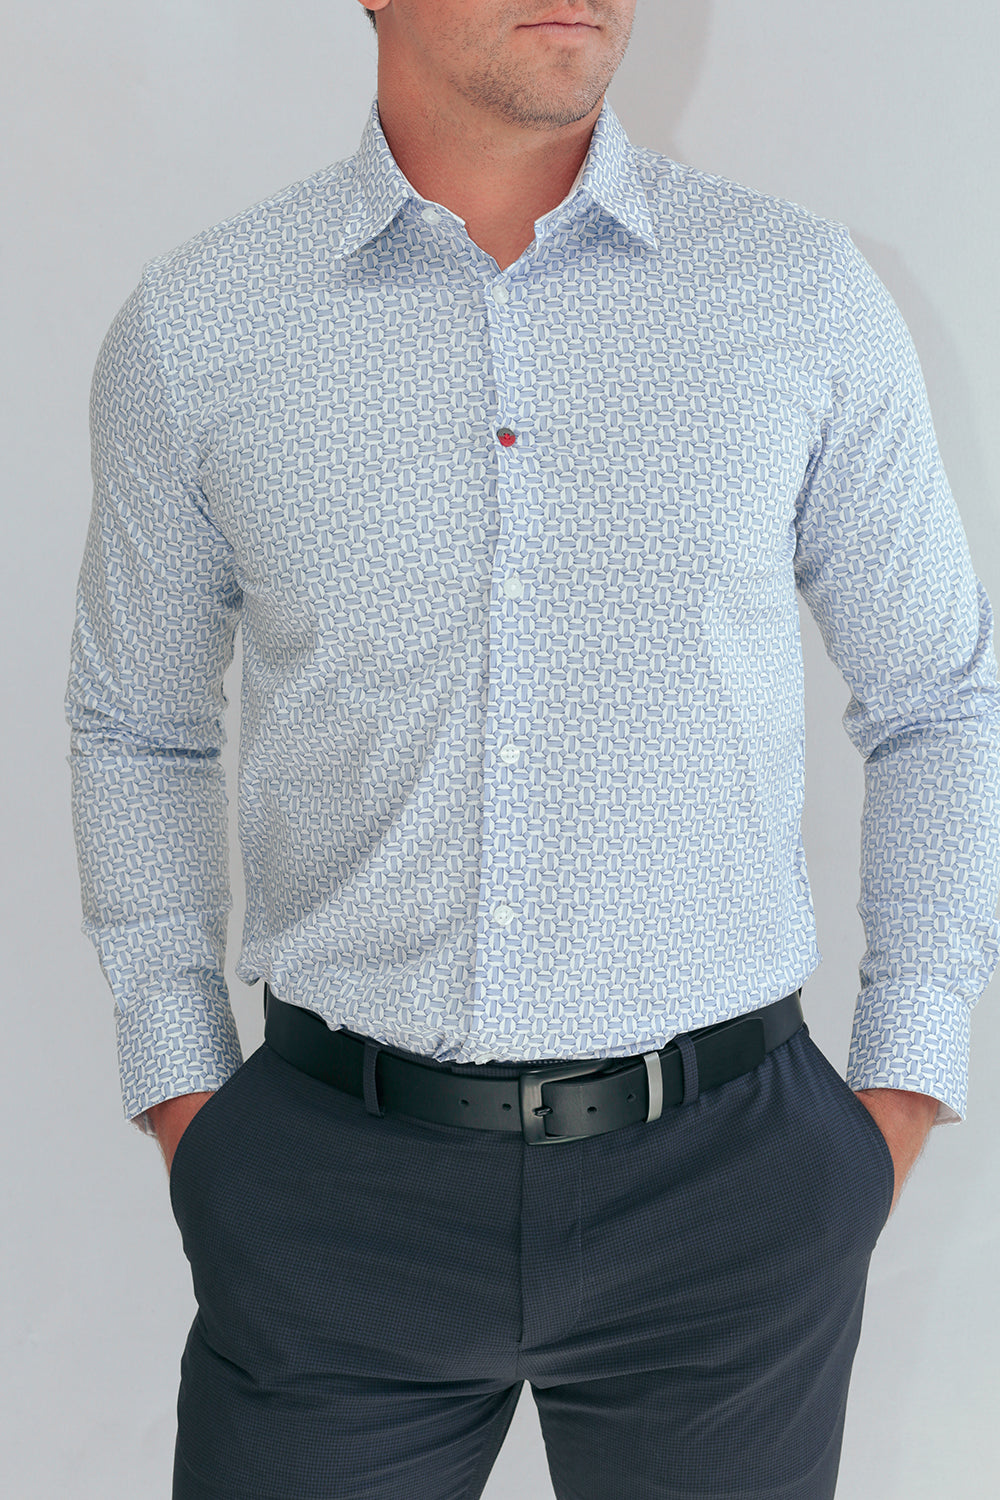 Tangier Wrinkle Free Shirts In White/Blue Mediterranean Prints